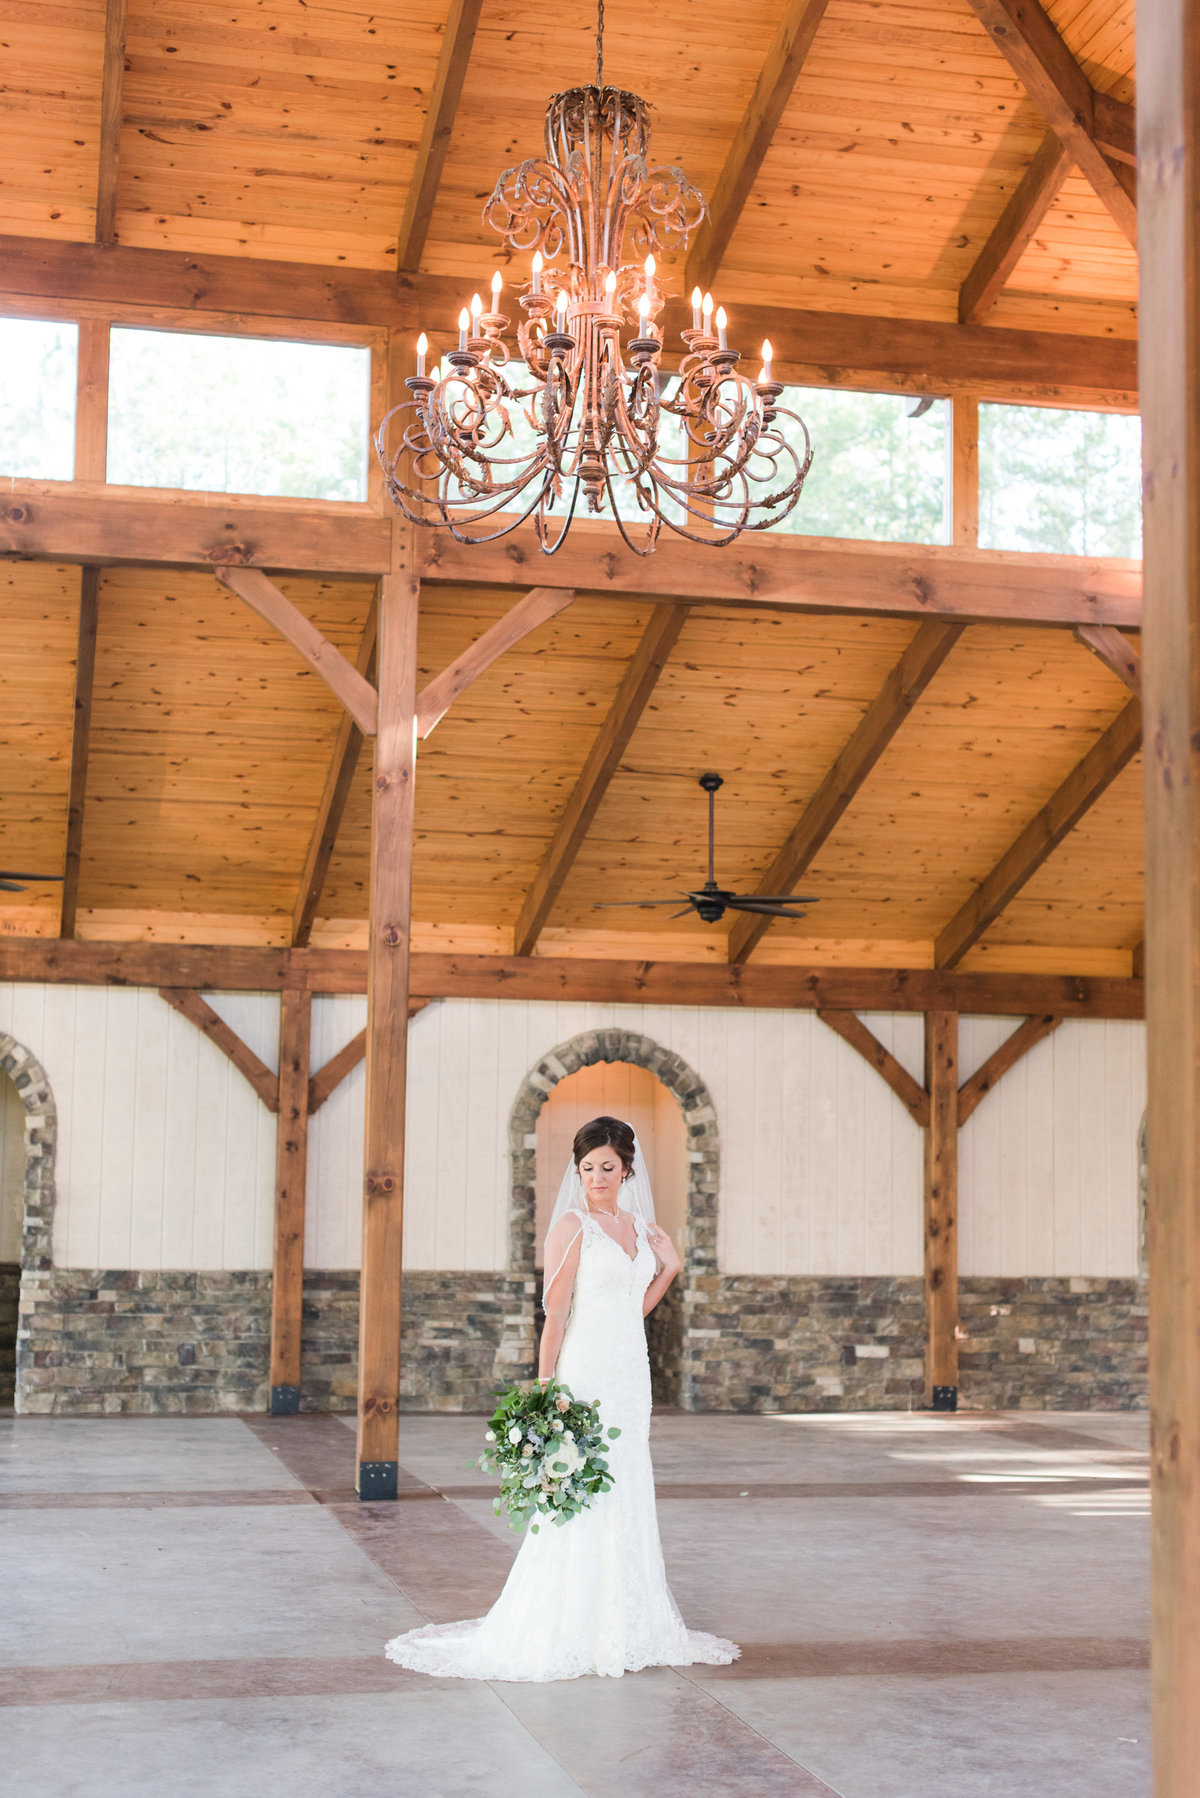 a bride wearing a laced thin strapped wedding dress holding a lush green and white wedding bouquet standing underneath a grand chandelier at Meadows at Walnut Cove